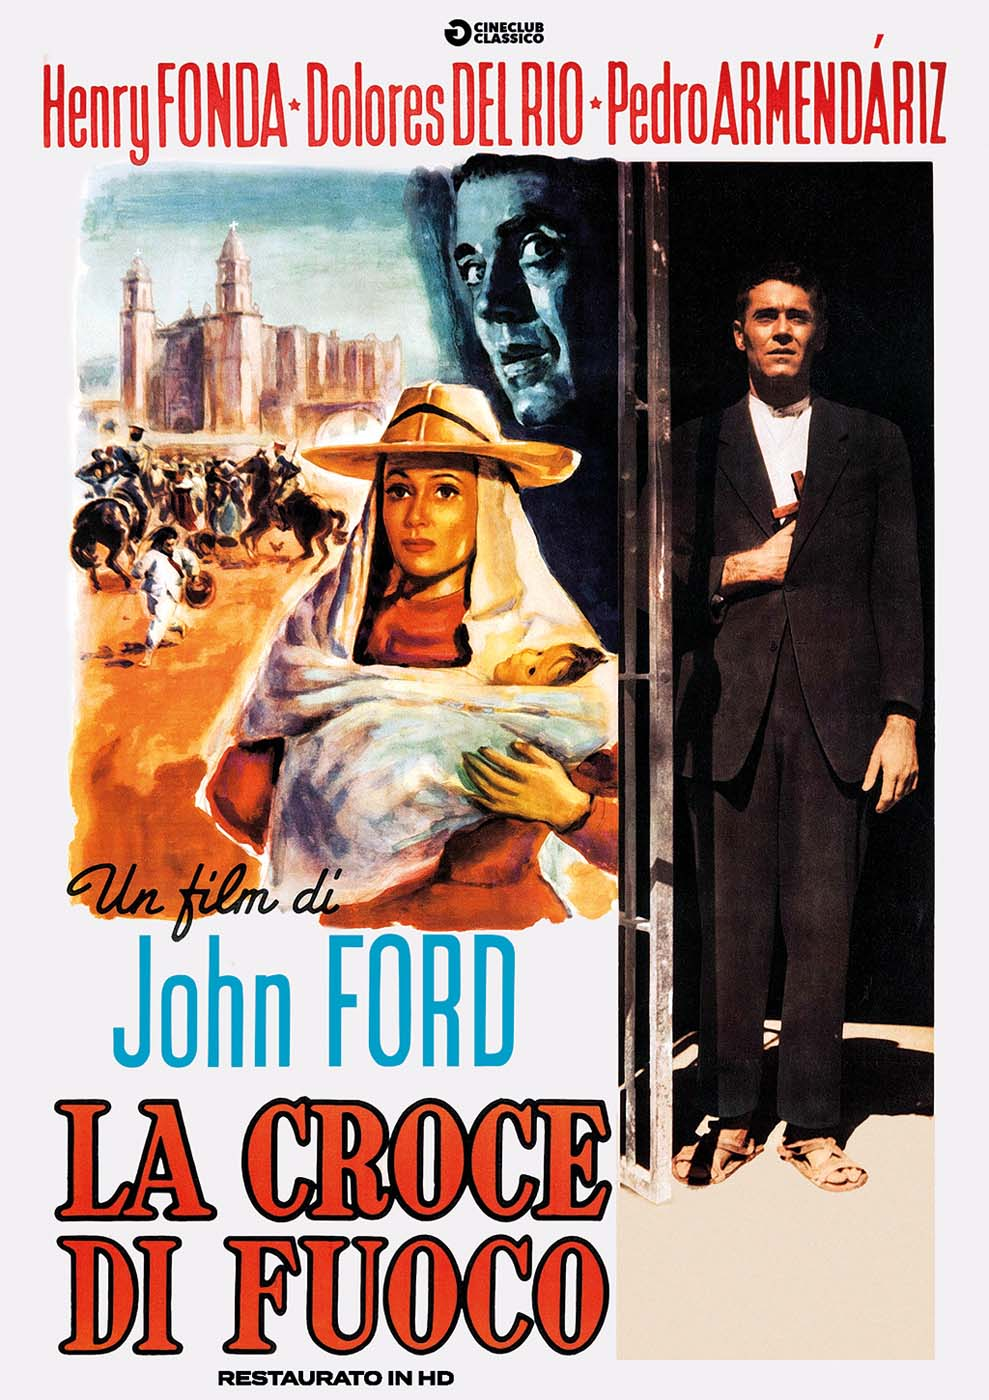 LA CROCE DI FUOCO (RESTAURATO IN HD) (DVD)